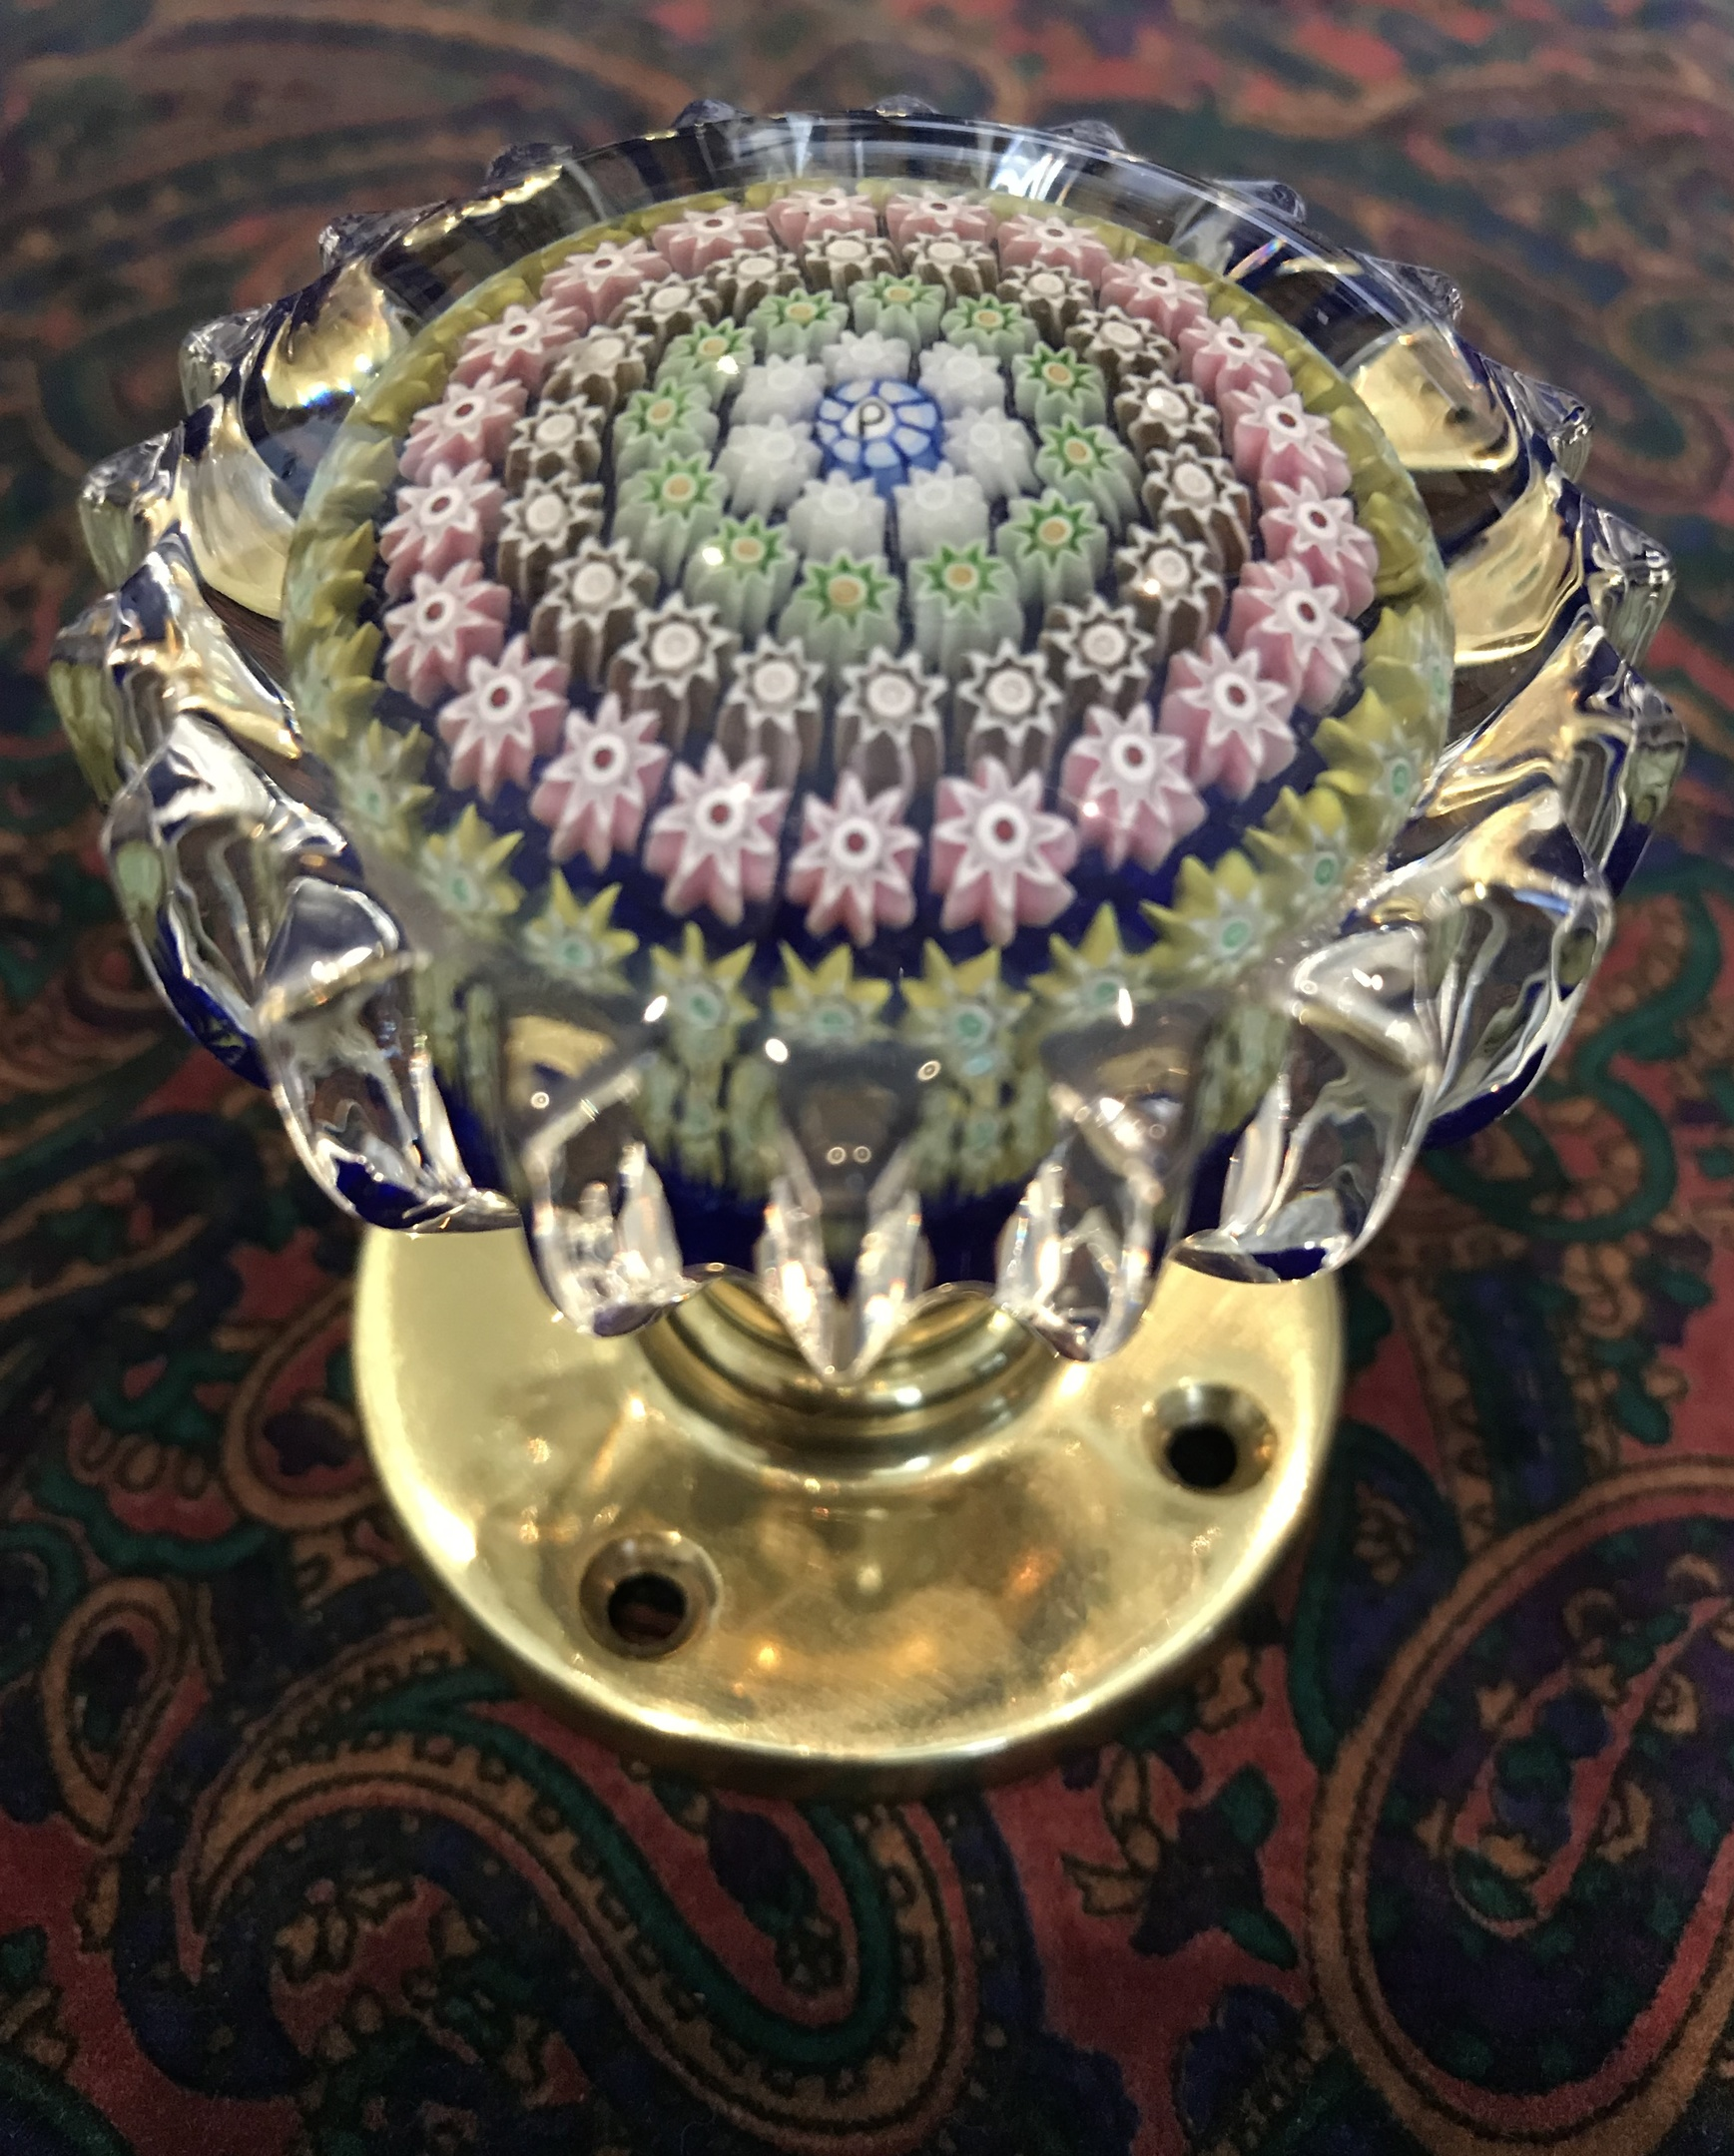 Perthshire Concentric Millefiori Glass Paperweight Doorknob Collectors Weekly